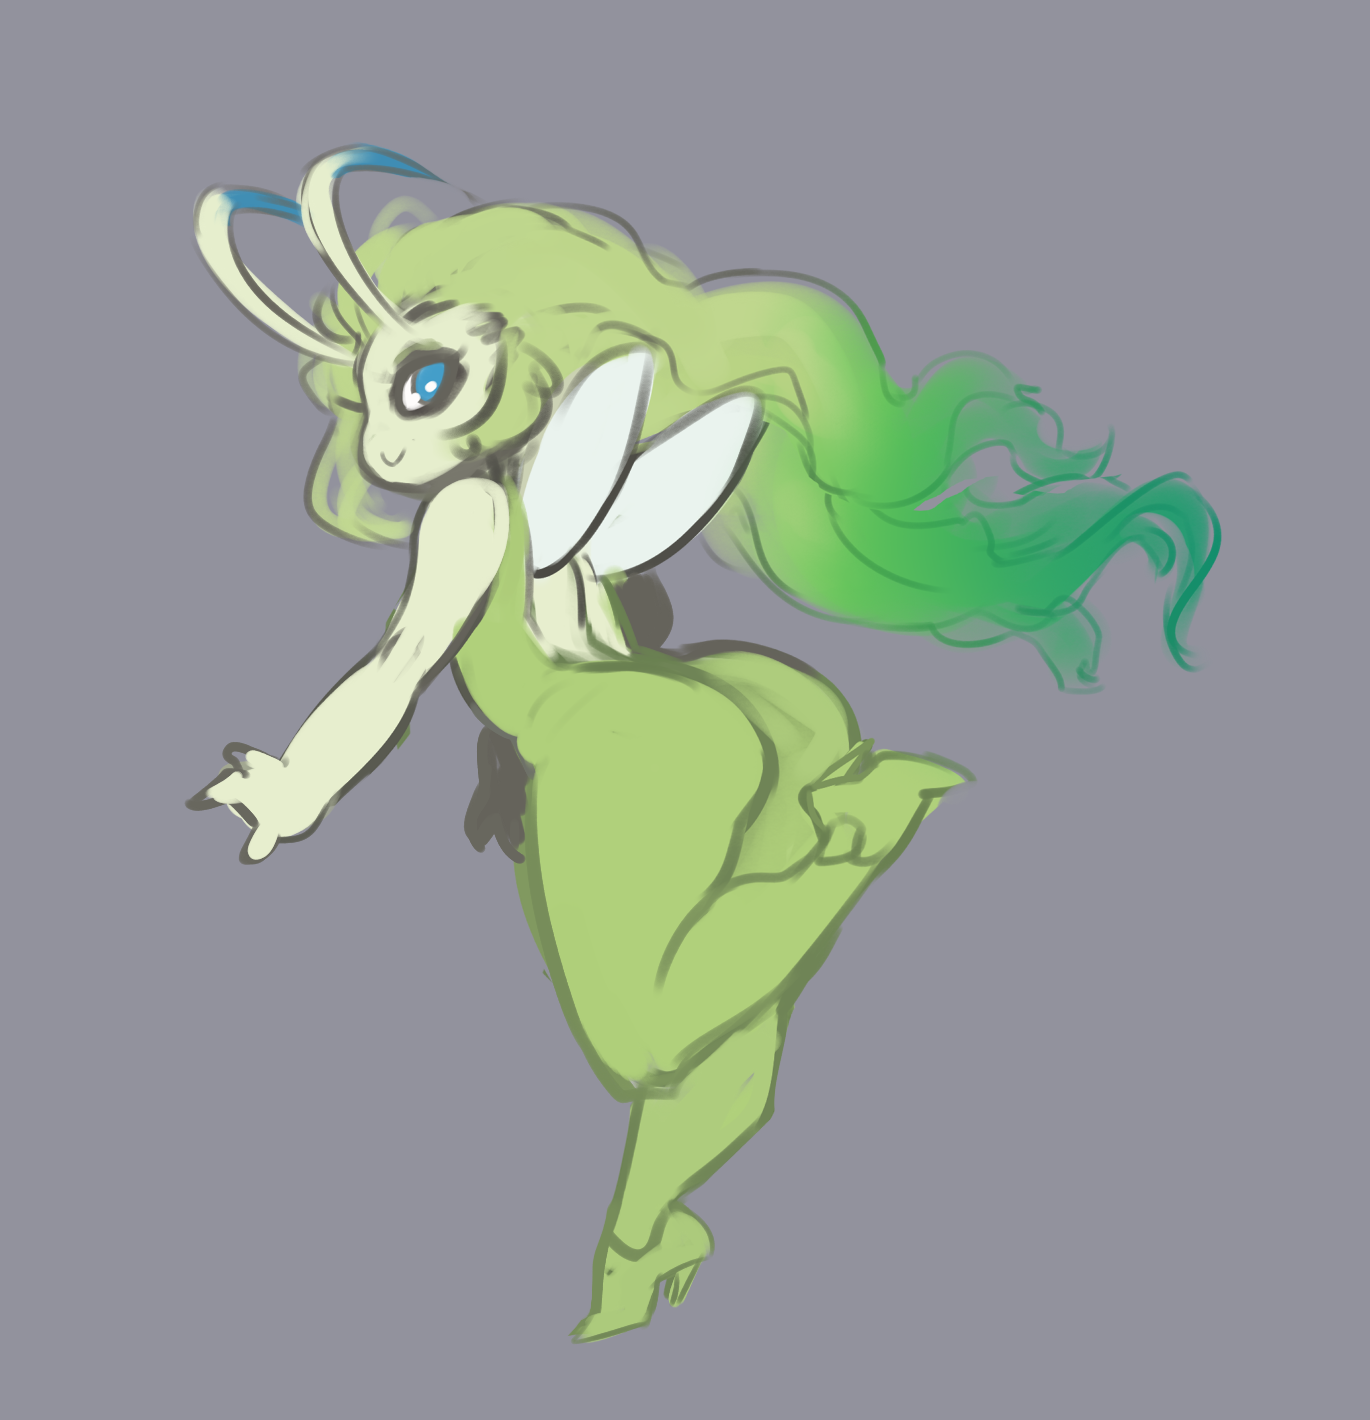 e926 ambiguous_gender blue_eyes butt butt_pose celebi clothed clothing female footwear girly green_hair grey_background hair hi_res high_heels humanoid legendary_pokémon liveforthefunk long_hair looking_back nintendo pokémon pokémon_(species) shoes simple_background smile solo video_games wings